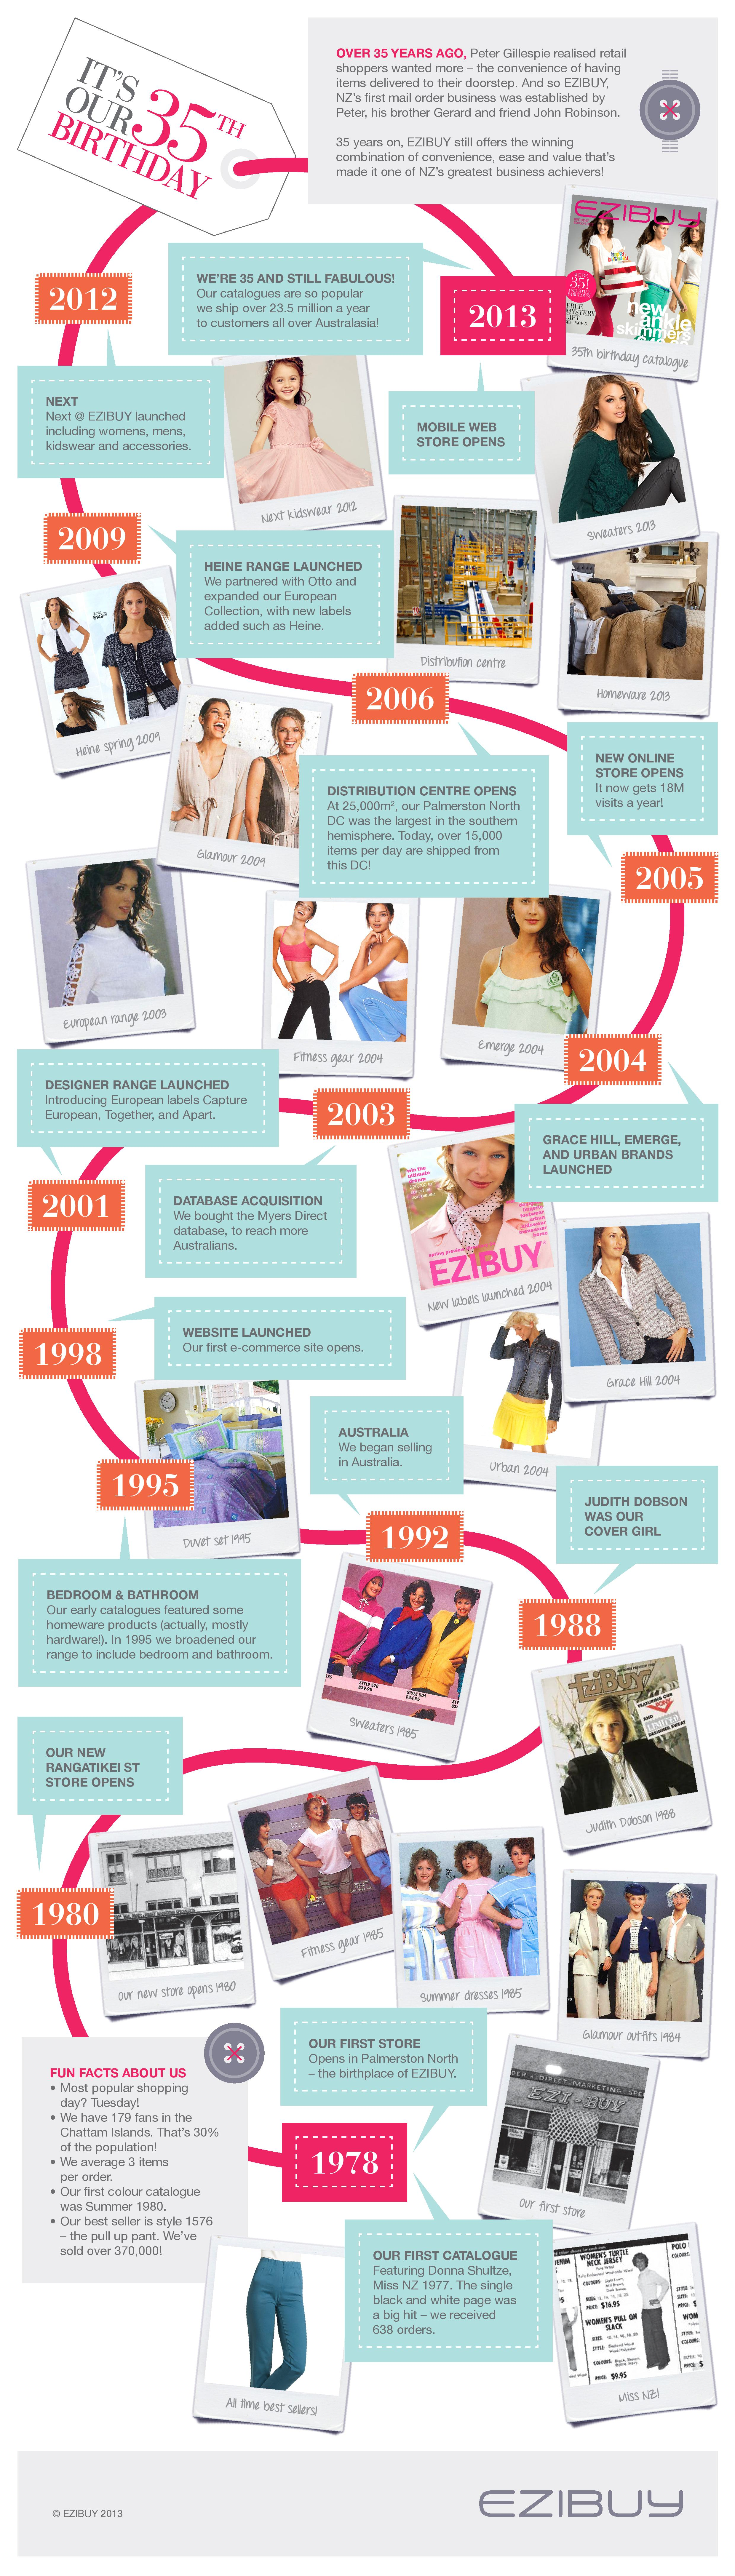 how-a-nz-fashion-clothing-store-evolved--a-35-years-story_5216cda0b997d